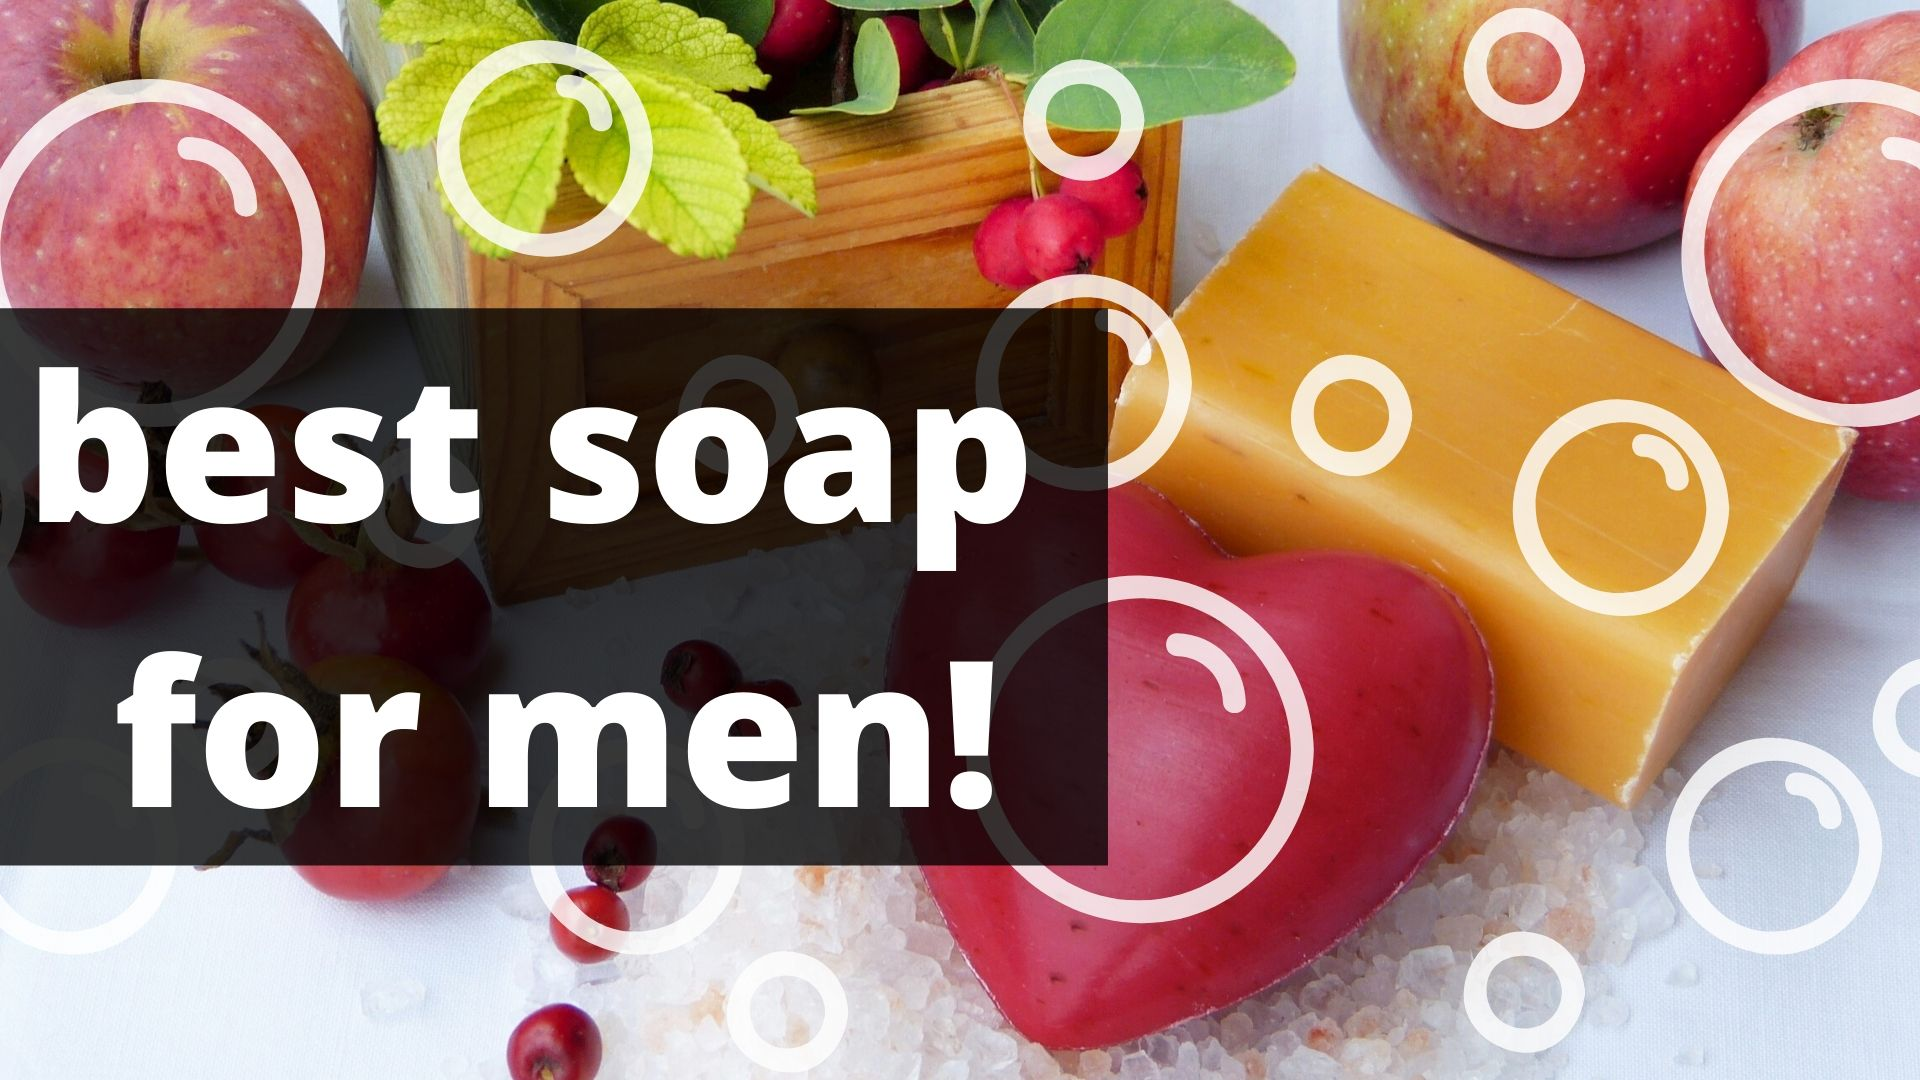 best soap for men!